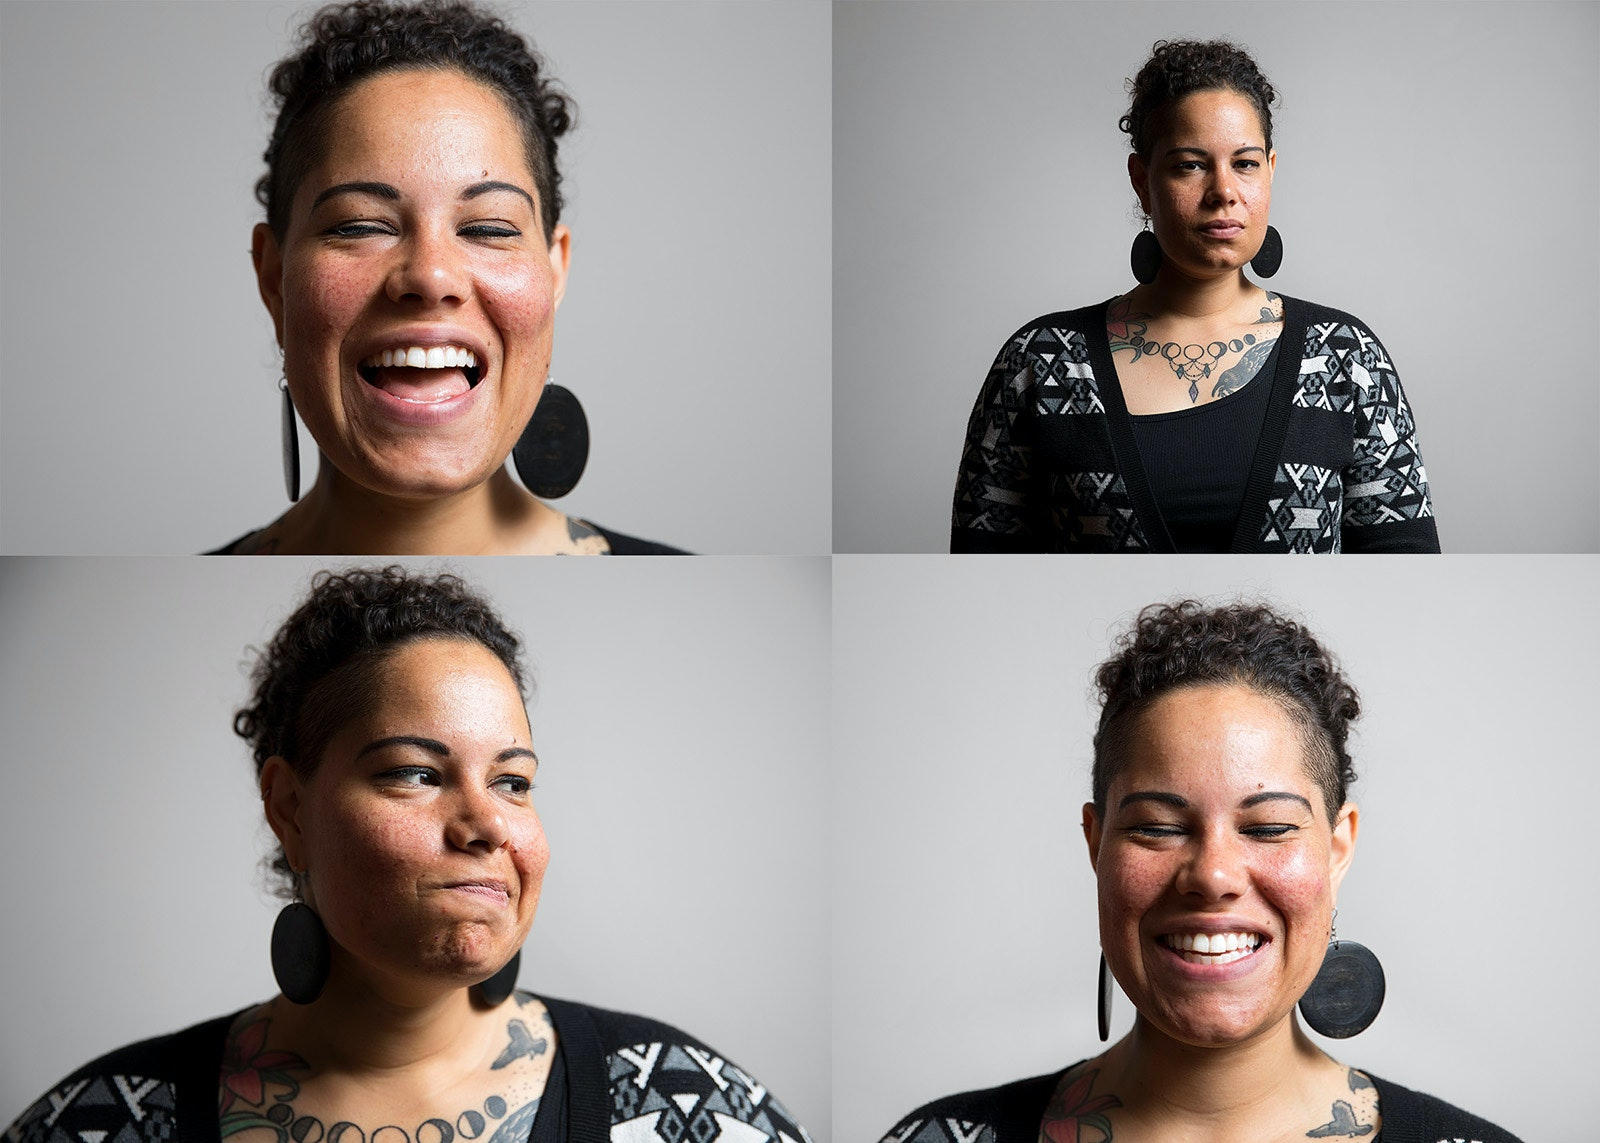 Nikkita Oliver: Let's find the will to meet progressive words with action